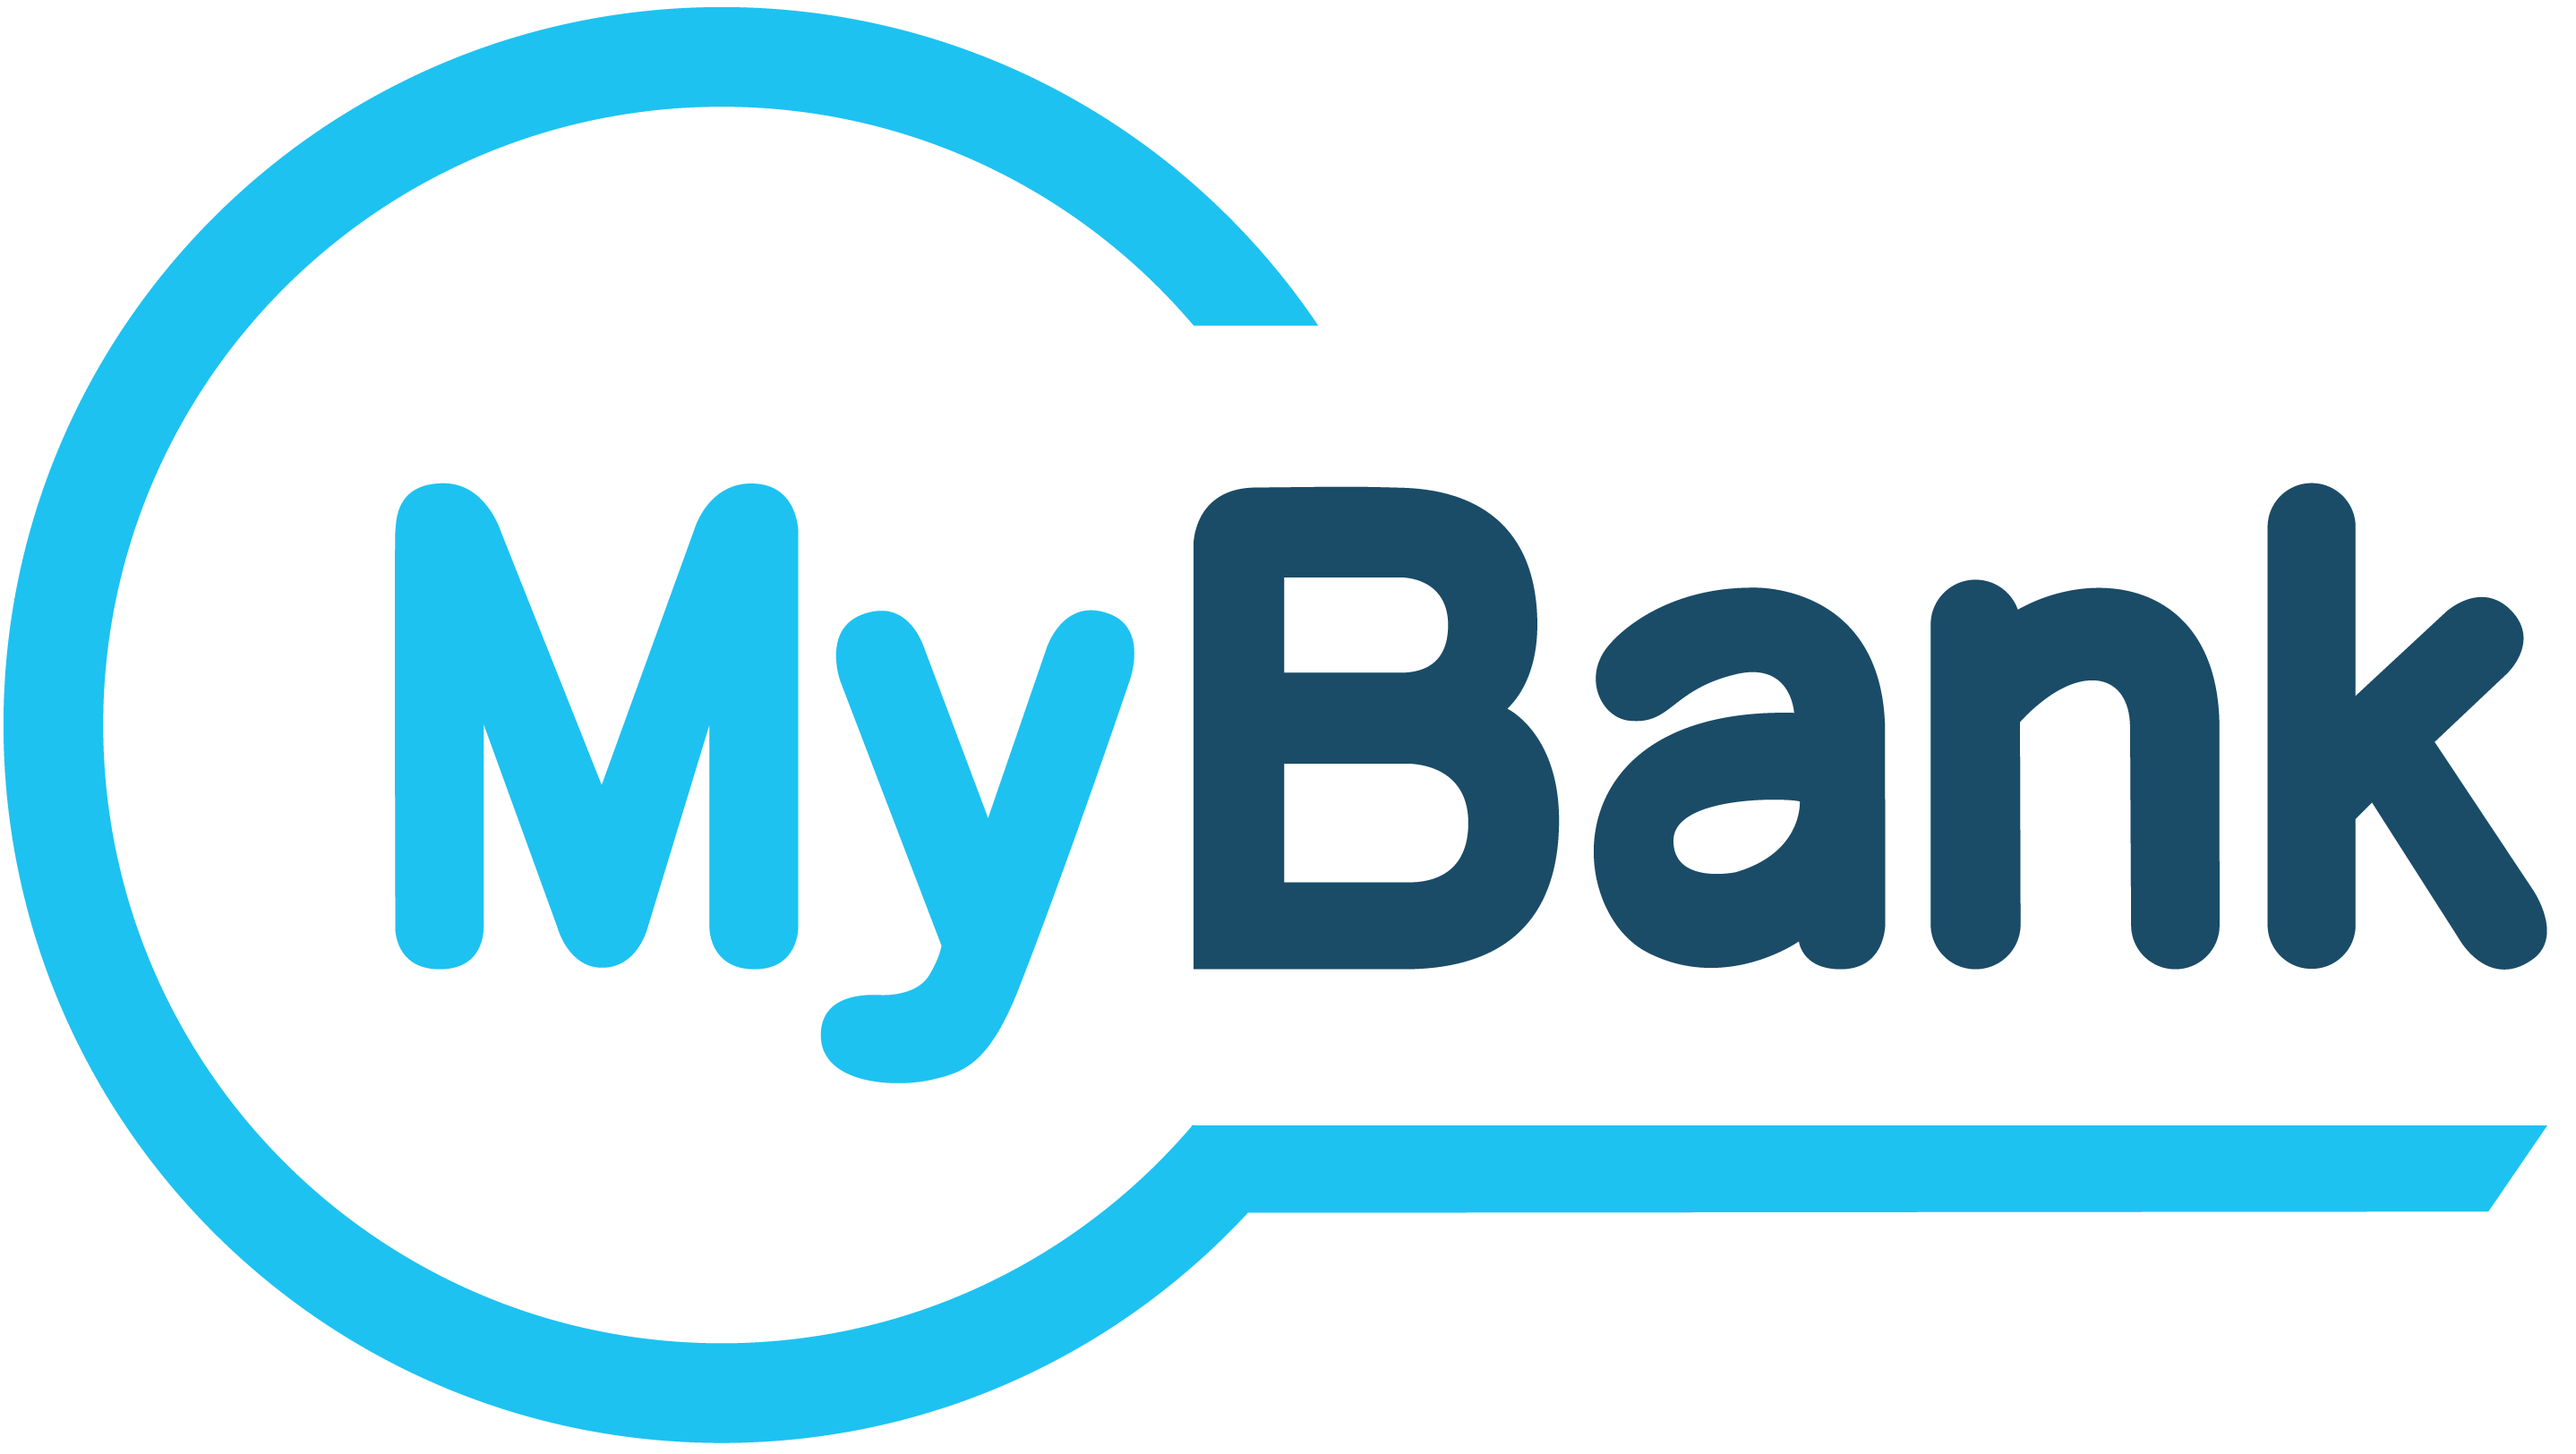 File:Logo MyBank positive.png - Wikimedia Commons